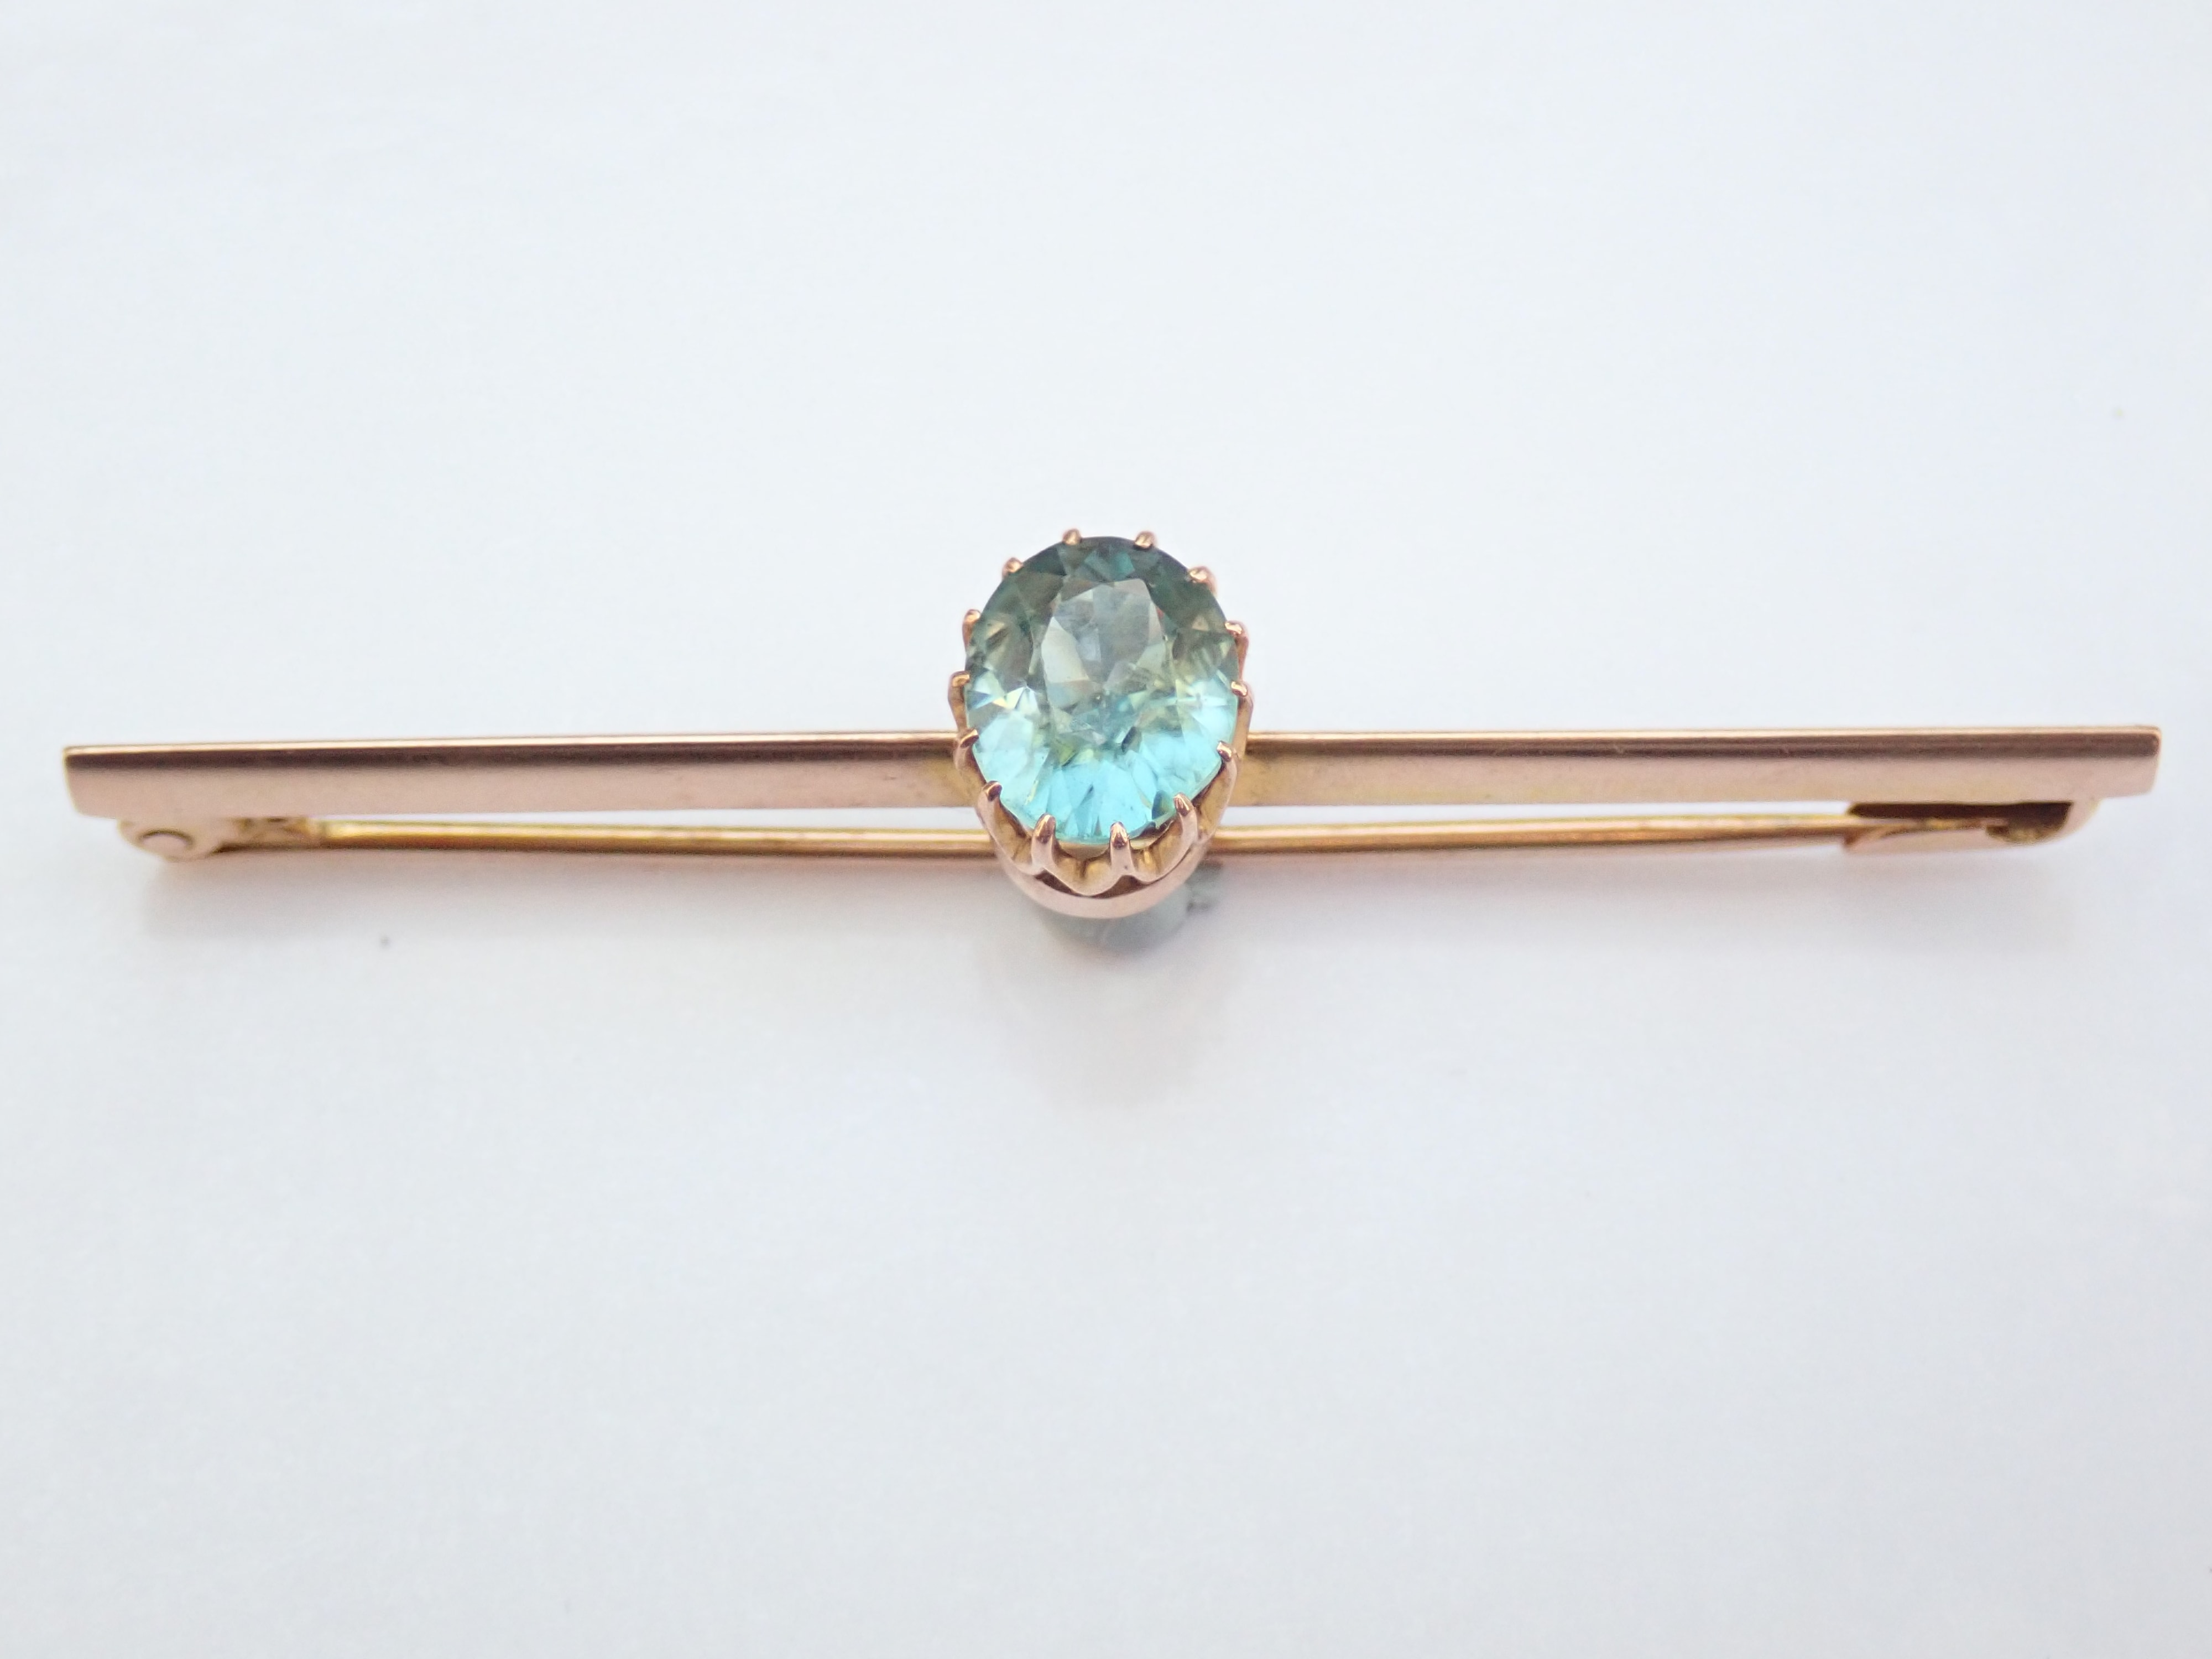 Antique!! 9ct Yellow Gold Pin Brooch with 1.50ct Aquamarine 2.0g #85